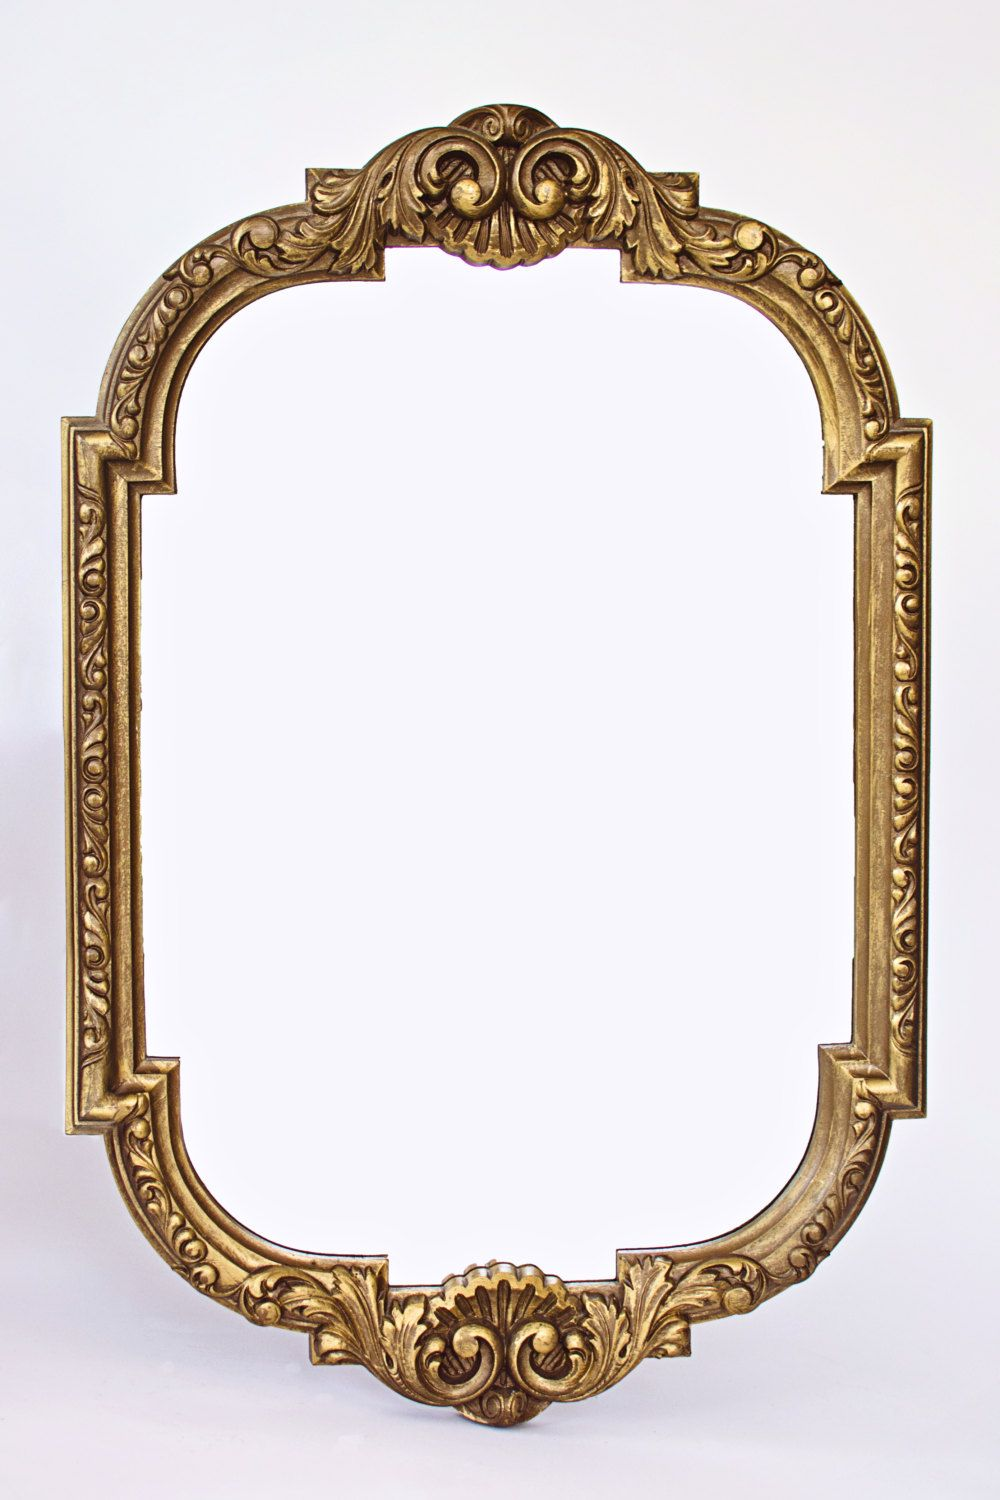 antique oval mirror frame. Decorative Mirror, Ornate Antique Brass Resin Mirror Frame, Gesso- Oval Frame